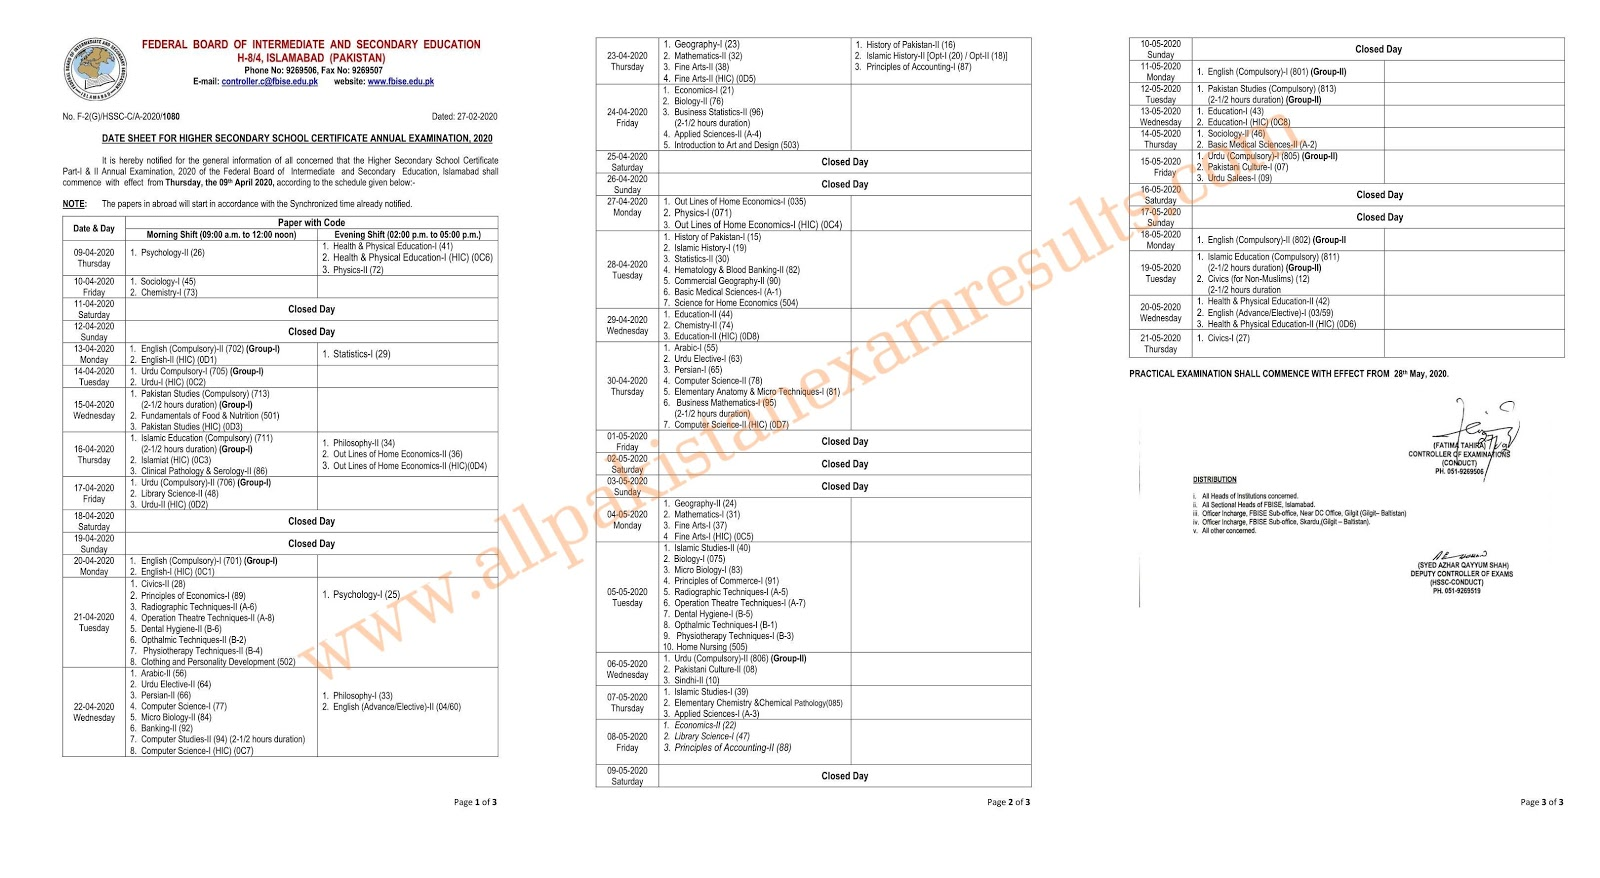 BISE Federal Board 11th and 12th Date Sheet 2020